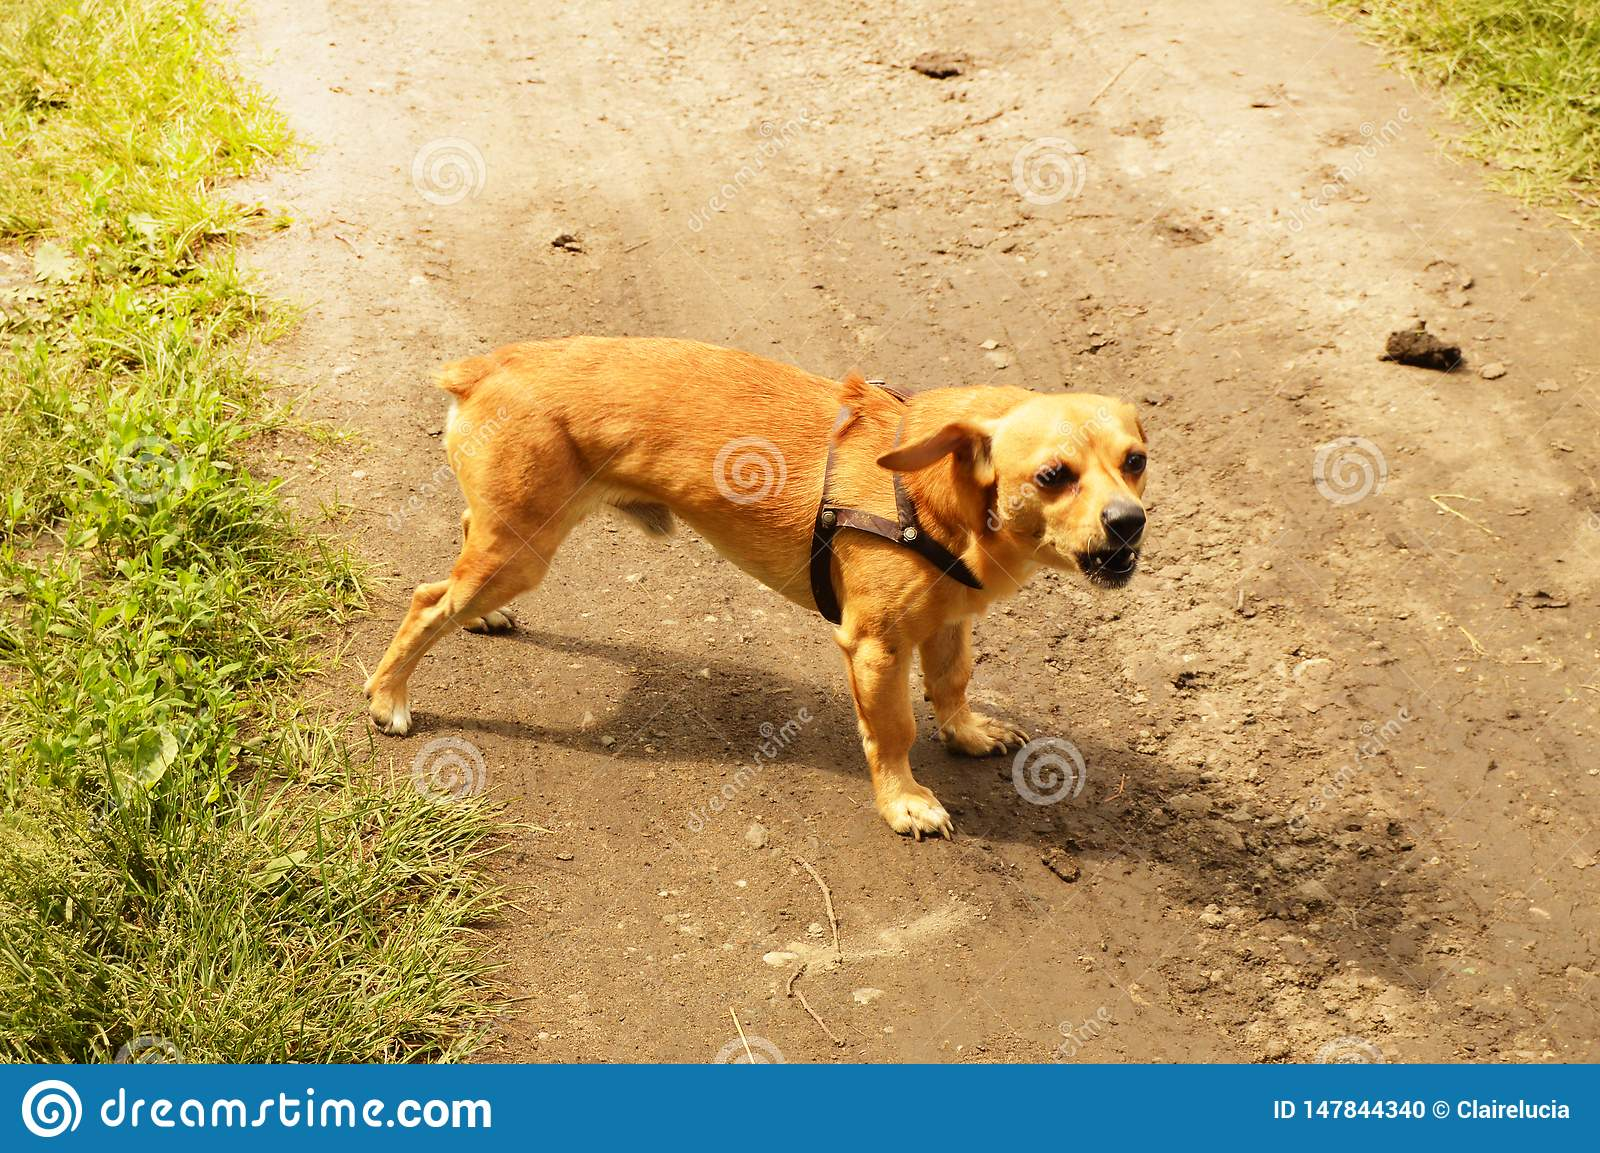 Little angry red dog stands on the road and looks aggressively, outdoors on a summer day